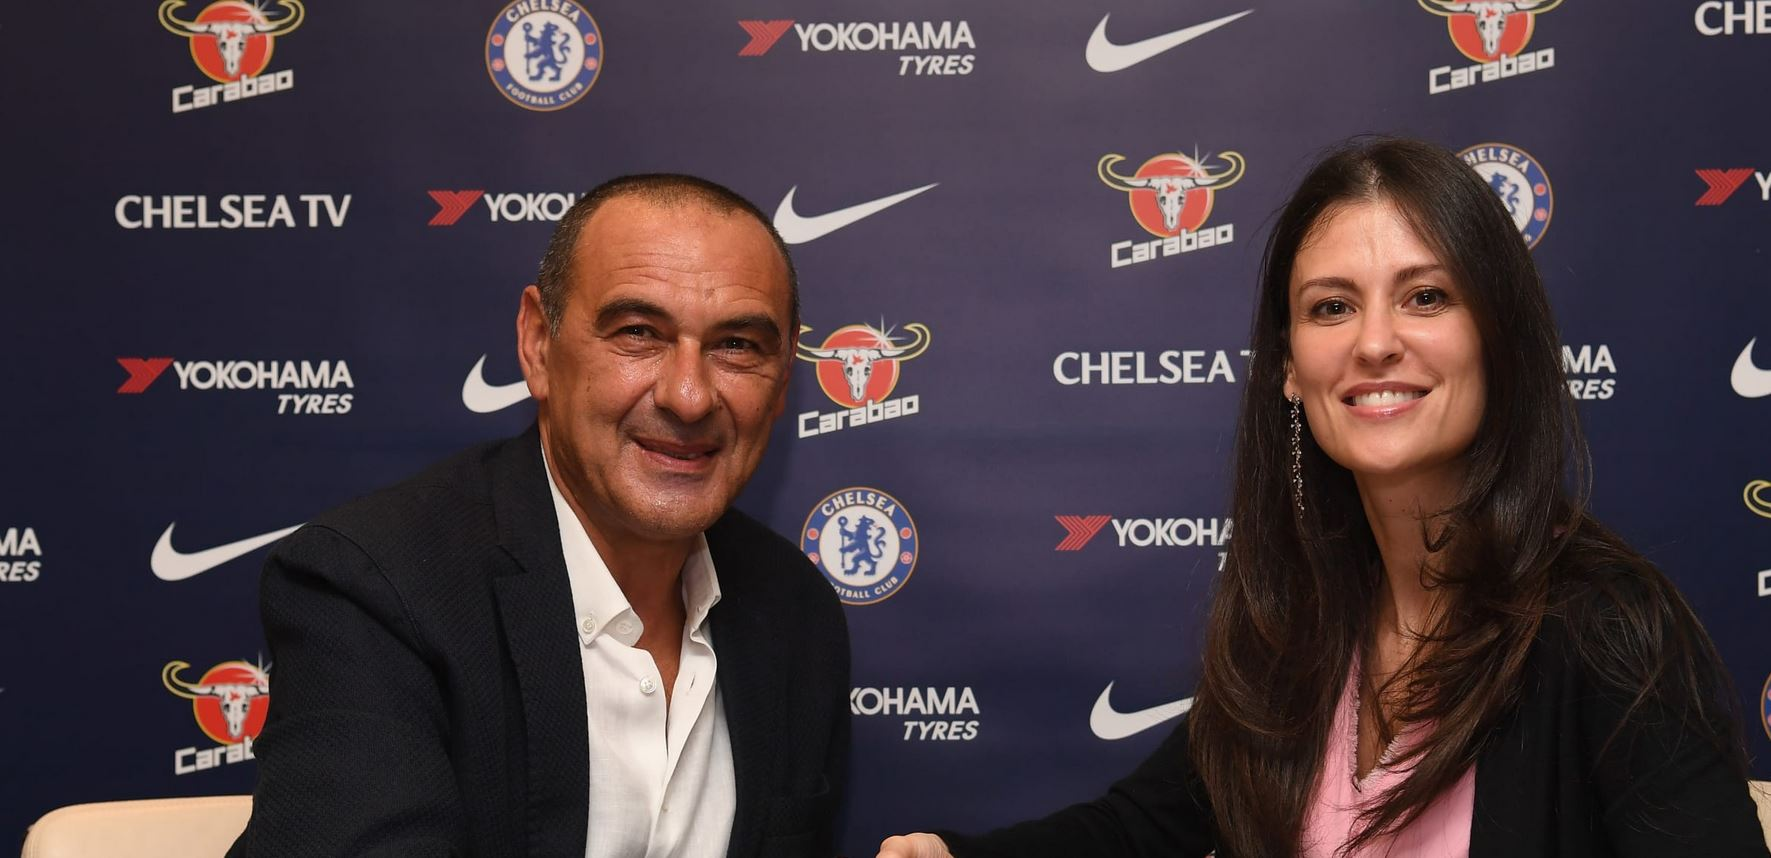 Juventus are currently managed by Maurizio Sarri